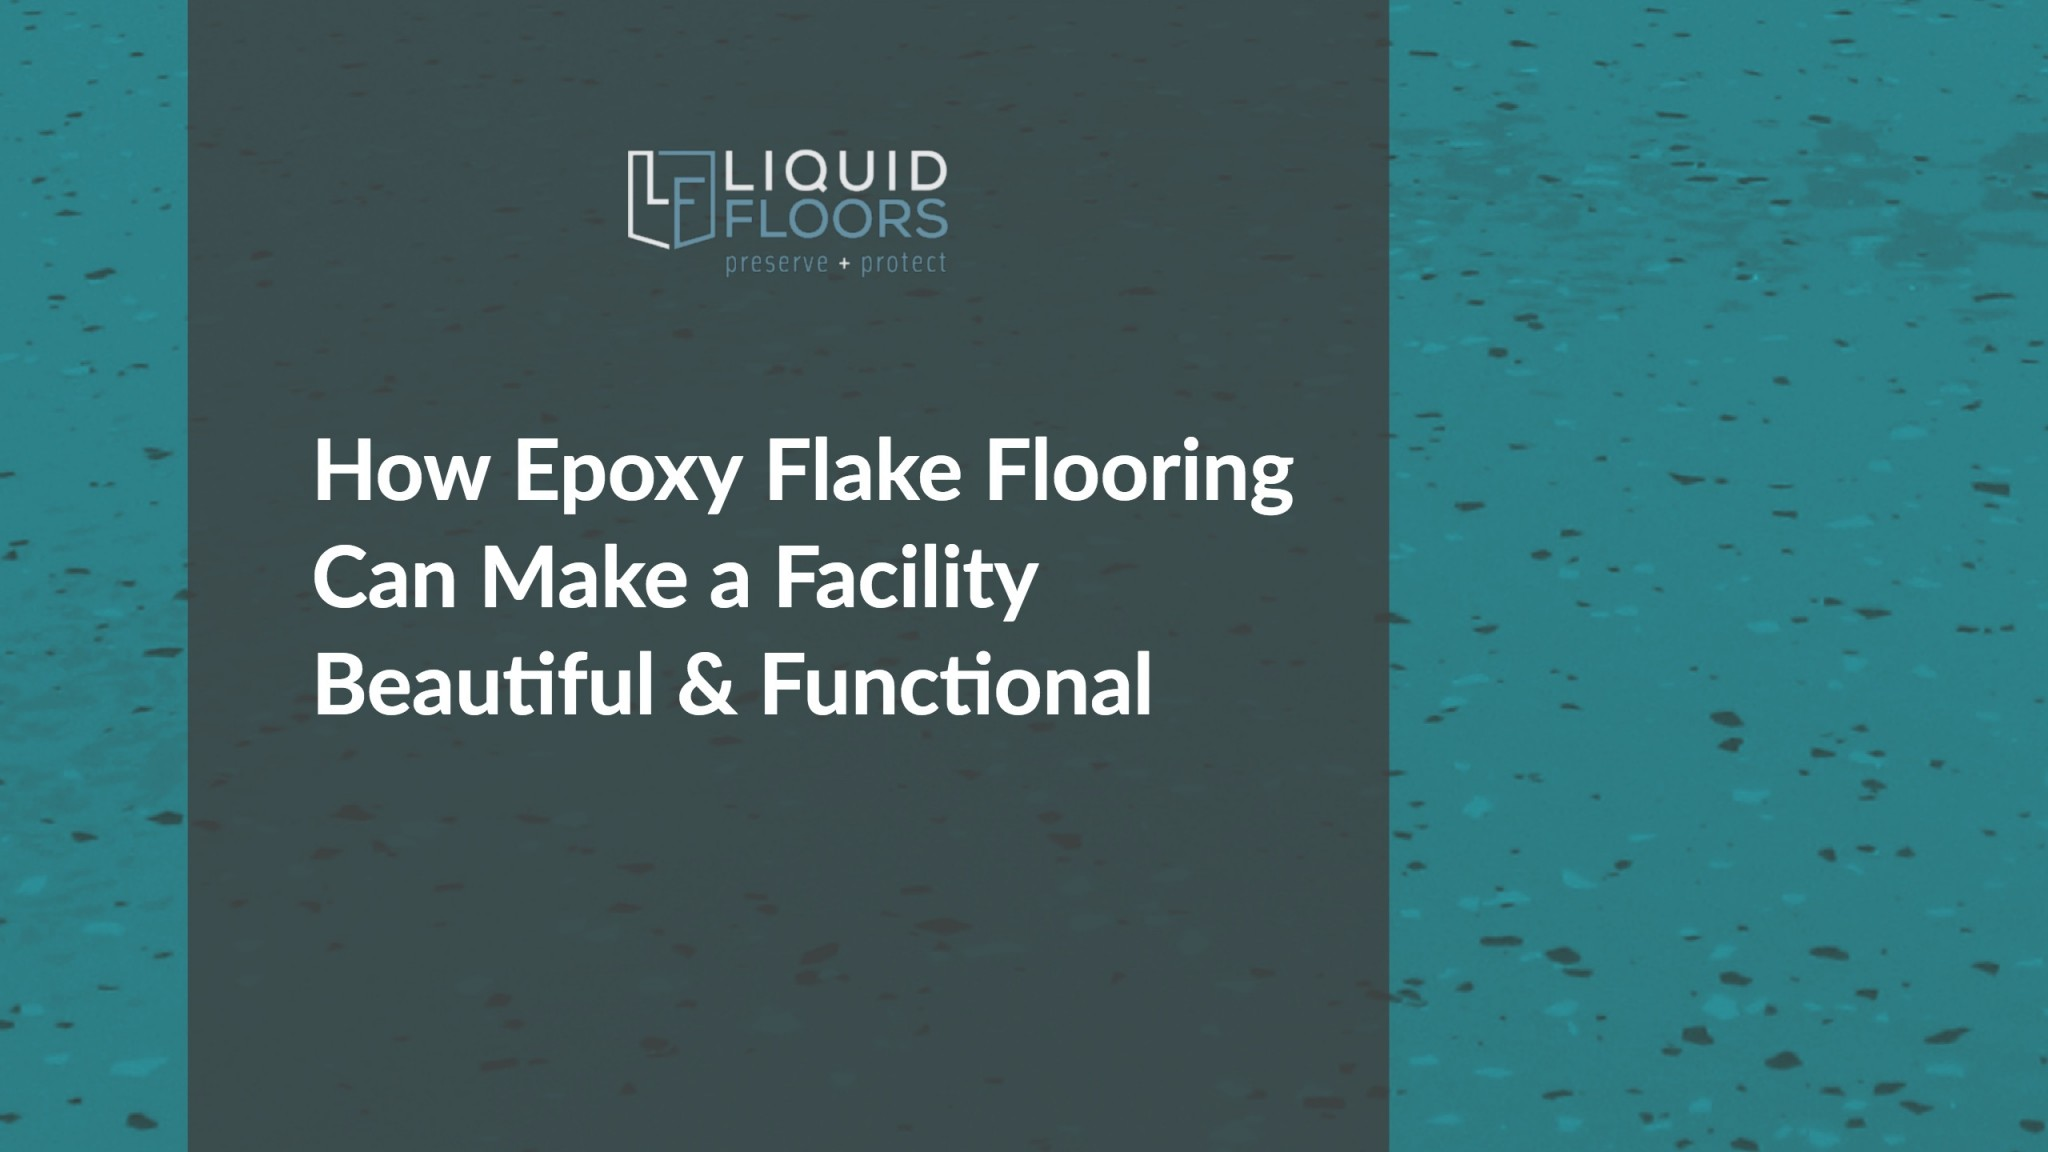 How Epoxy Flake Flooring Can Make a Facility Beautiful & Functional